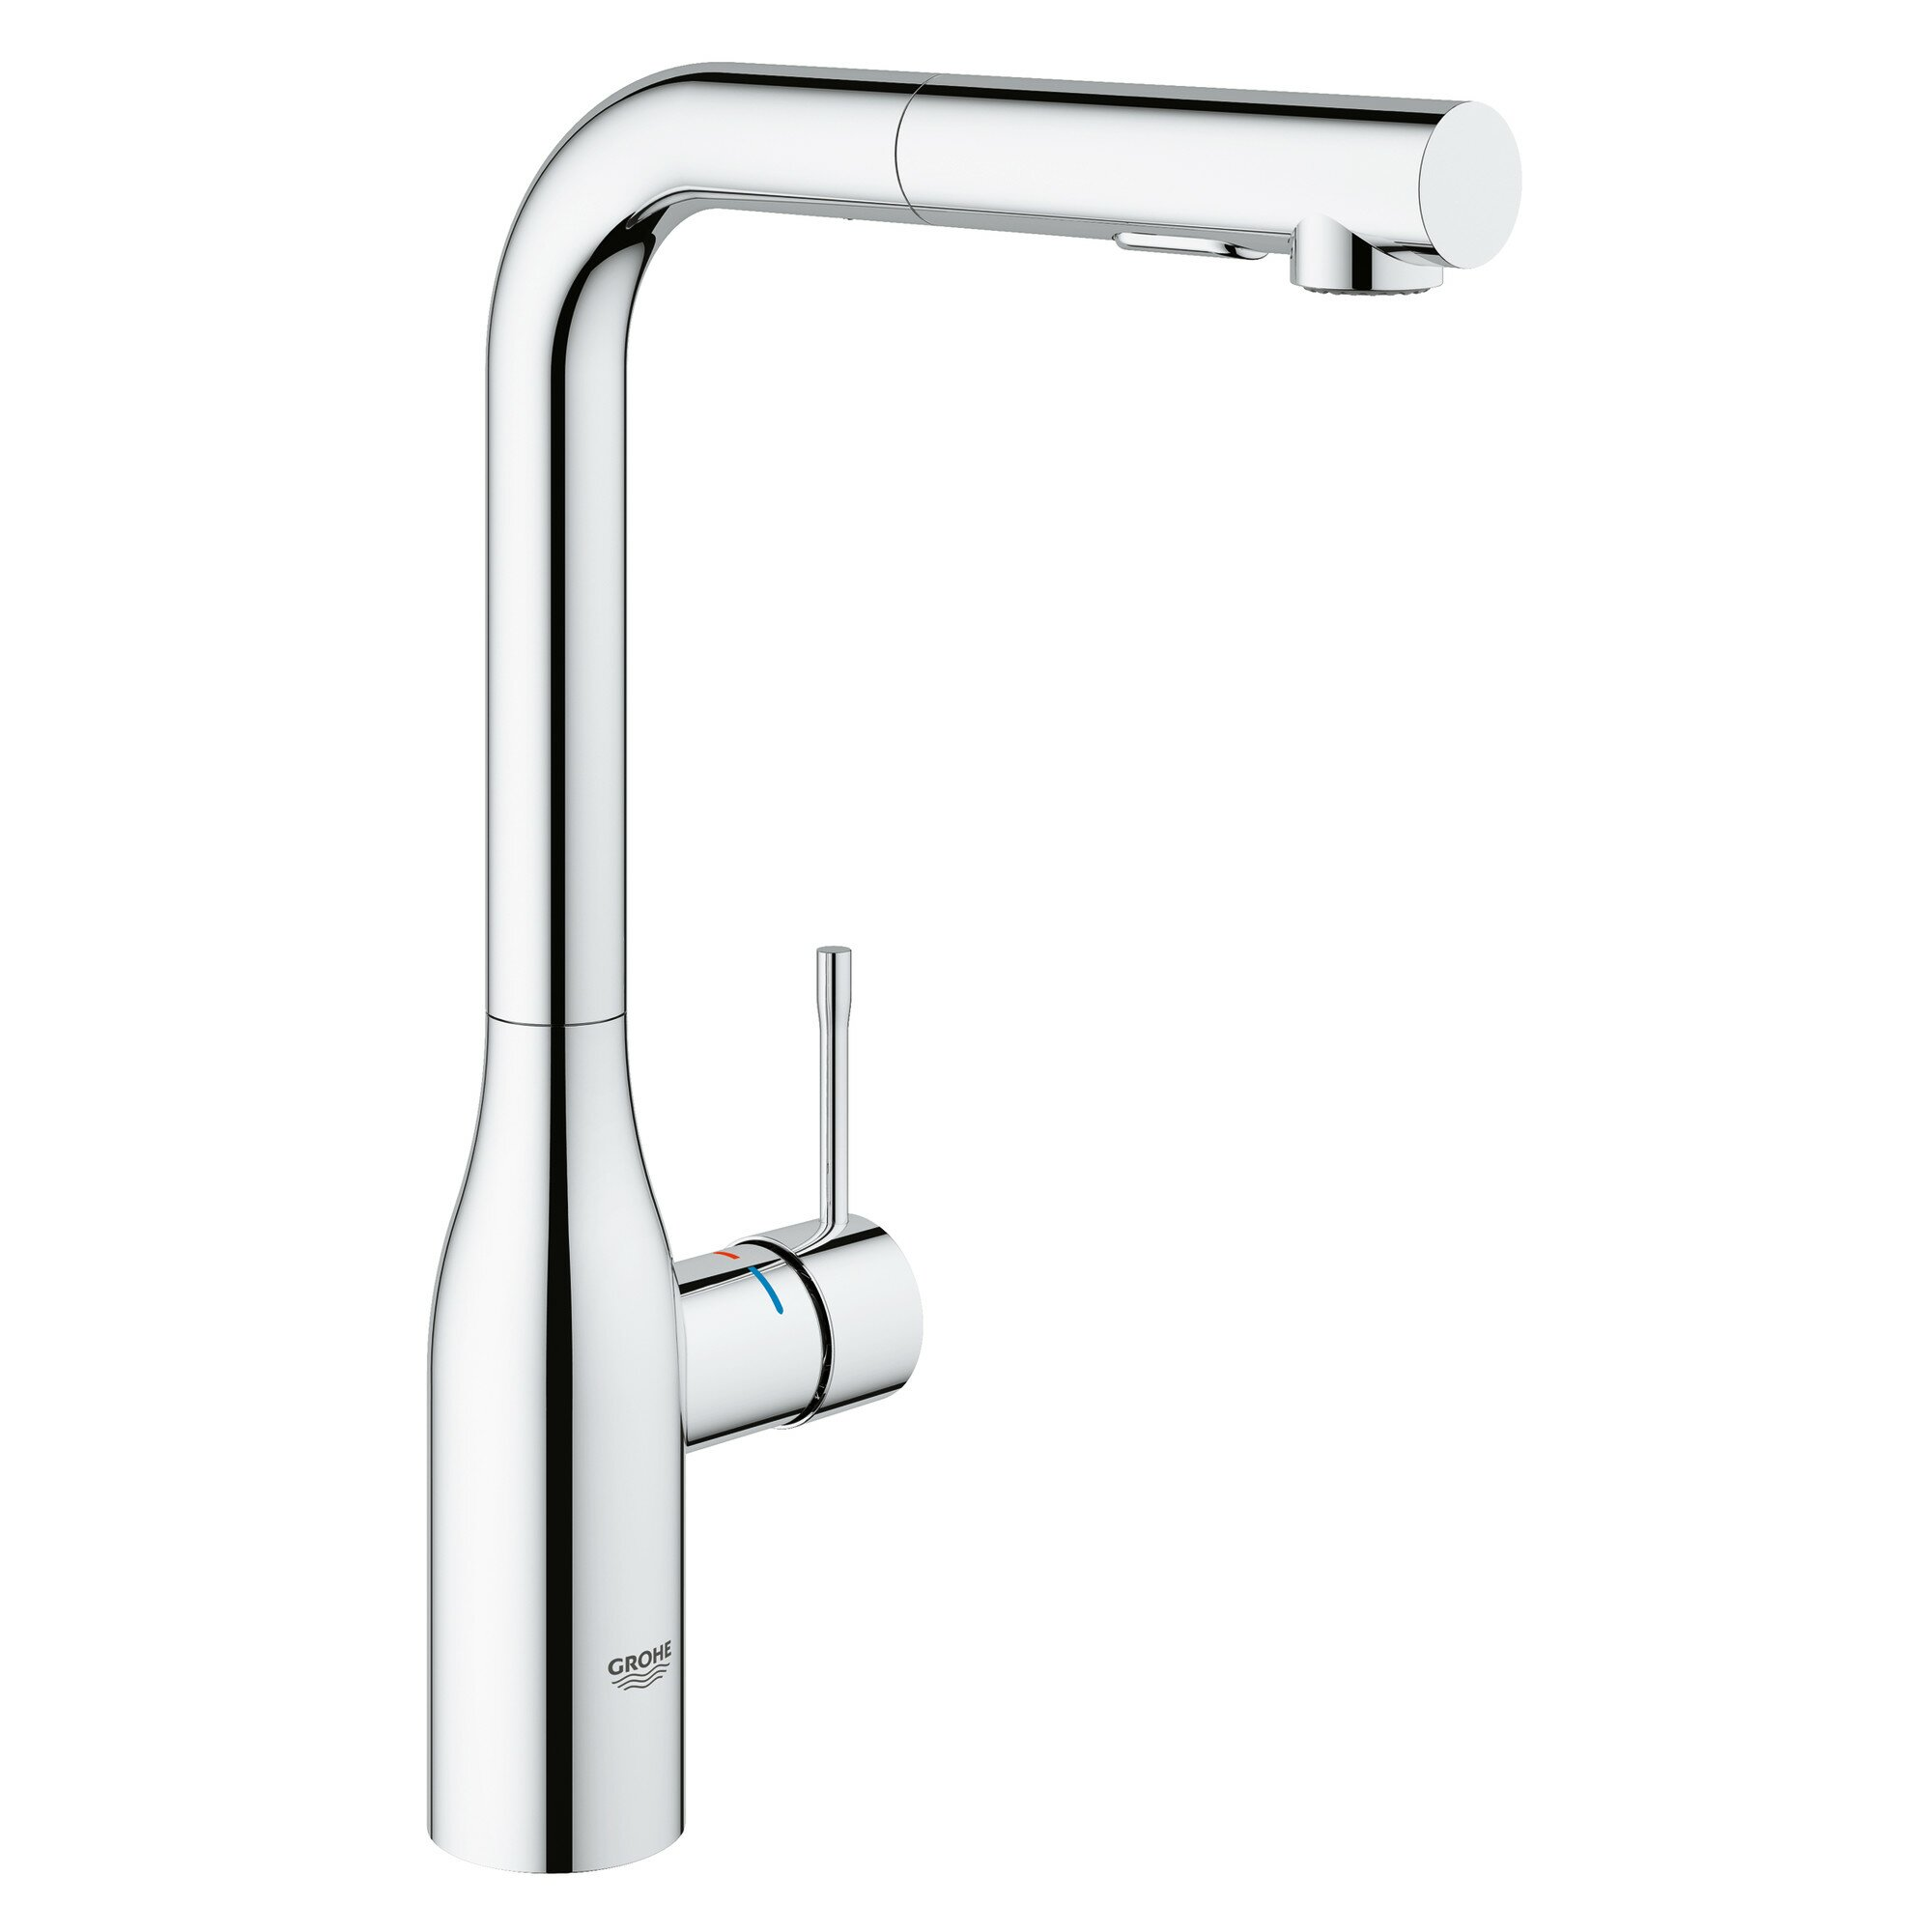 Deck Mount Kitchen Faucet Grohe Essence New Single Handle Deck Mount Kitchen Faucet With